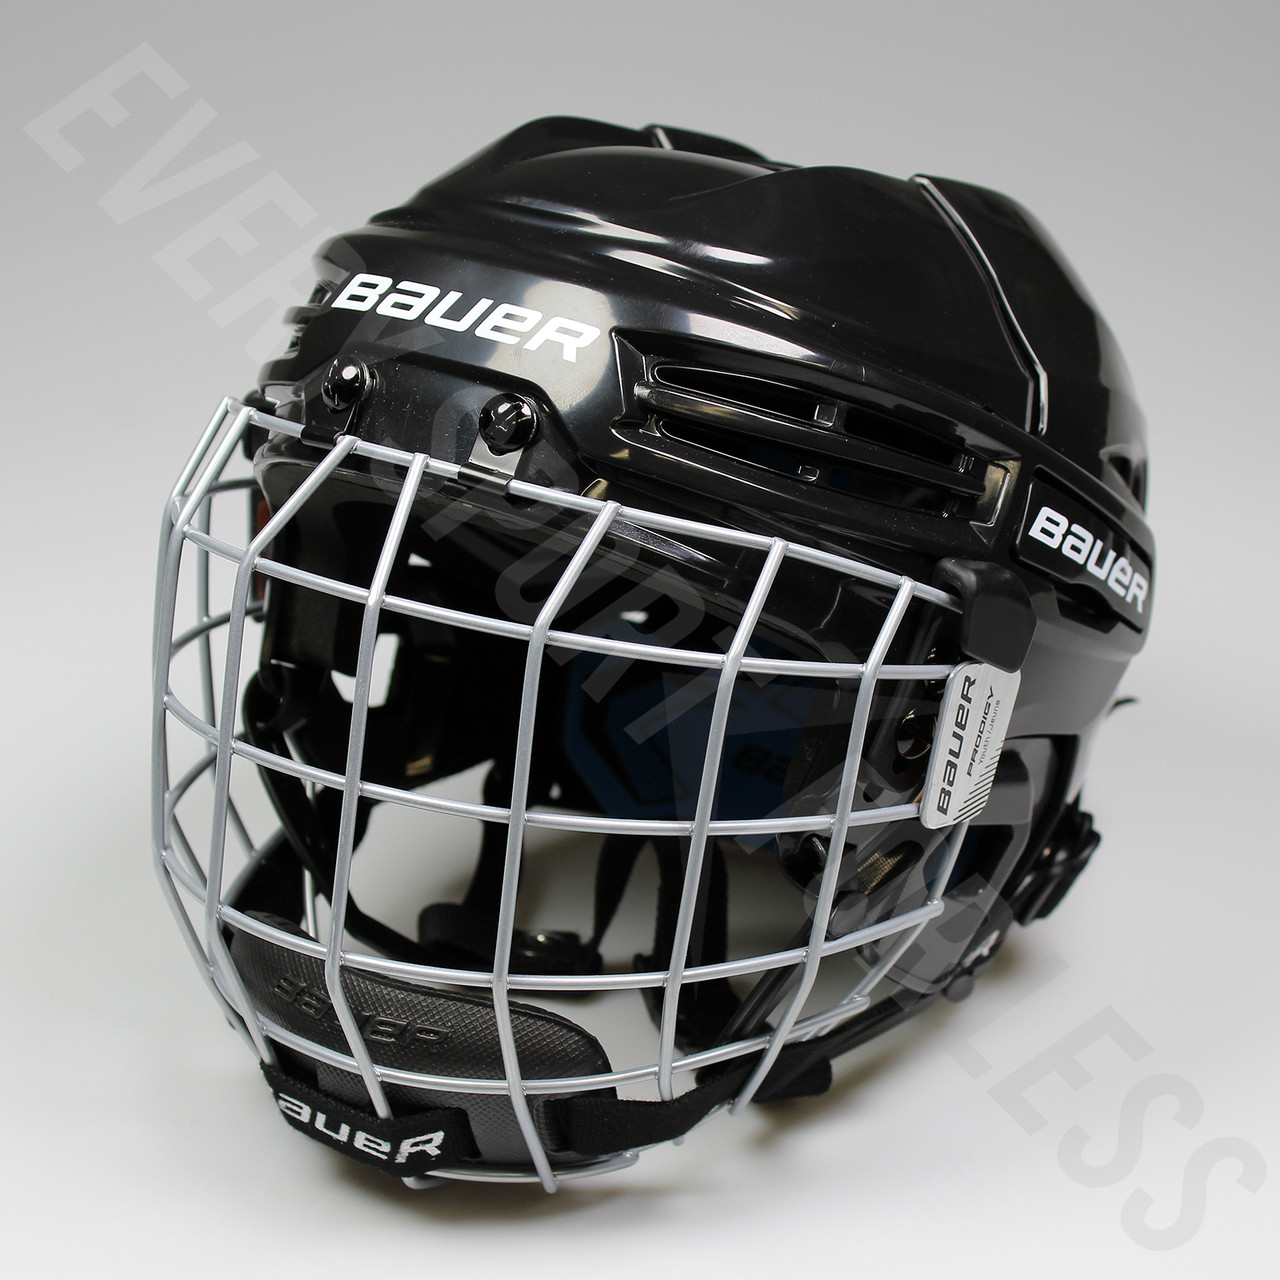 81a0266c269 ... Bauer Prodigy Youth W  Cage Ice Hockey Helmet Combo - Black ...